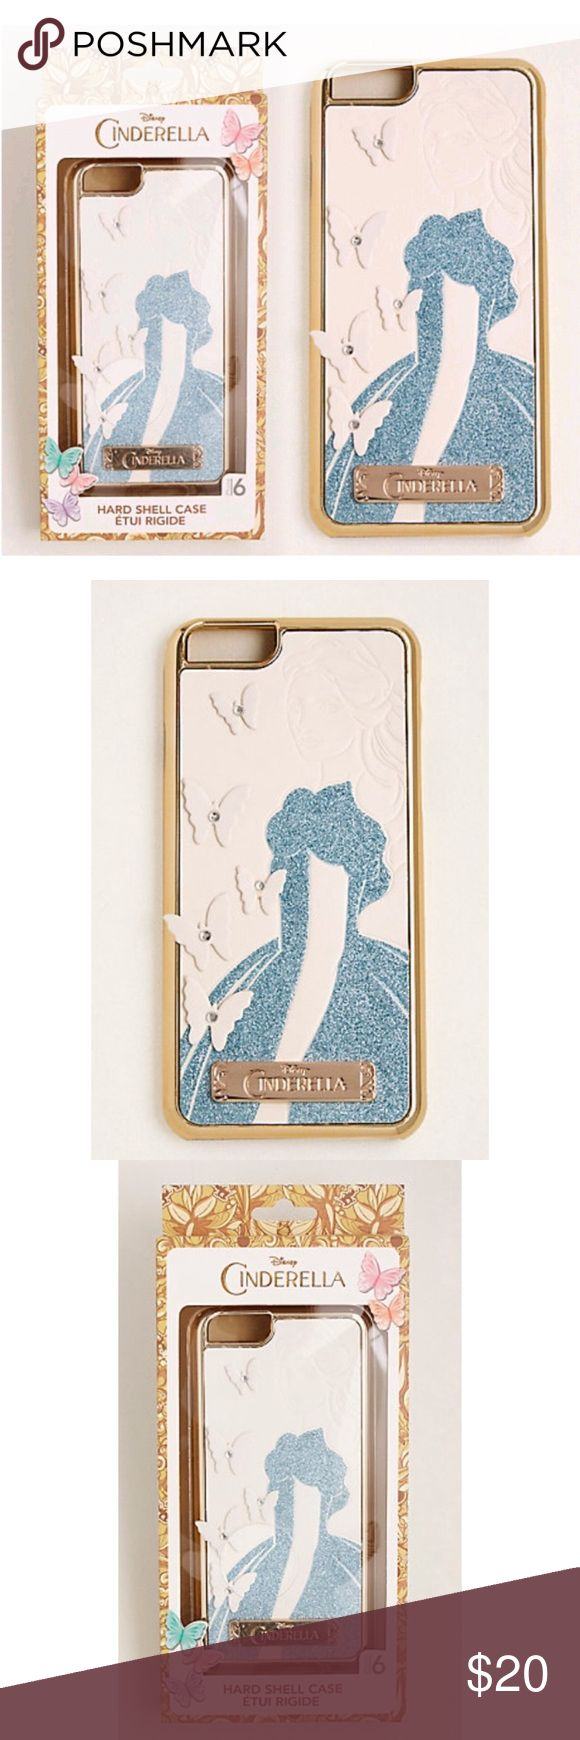 Super Cute Disney Cinderella IPhone 6 Case NWT Super Cute Disney Cinderella IPhone 6 Case. Case has a Hardshell Protective design which features a Detailed Glittering Cinderella Graphics & Buttery Appliqués. Additional Details Attached with Pictures Disney Accessories Phone Cases